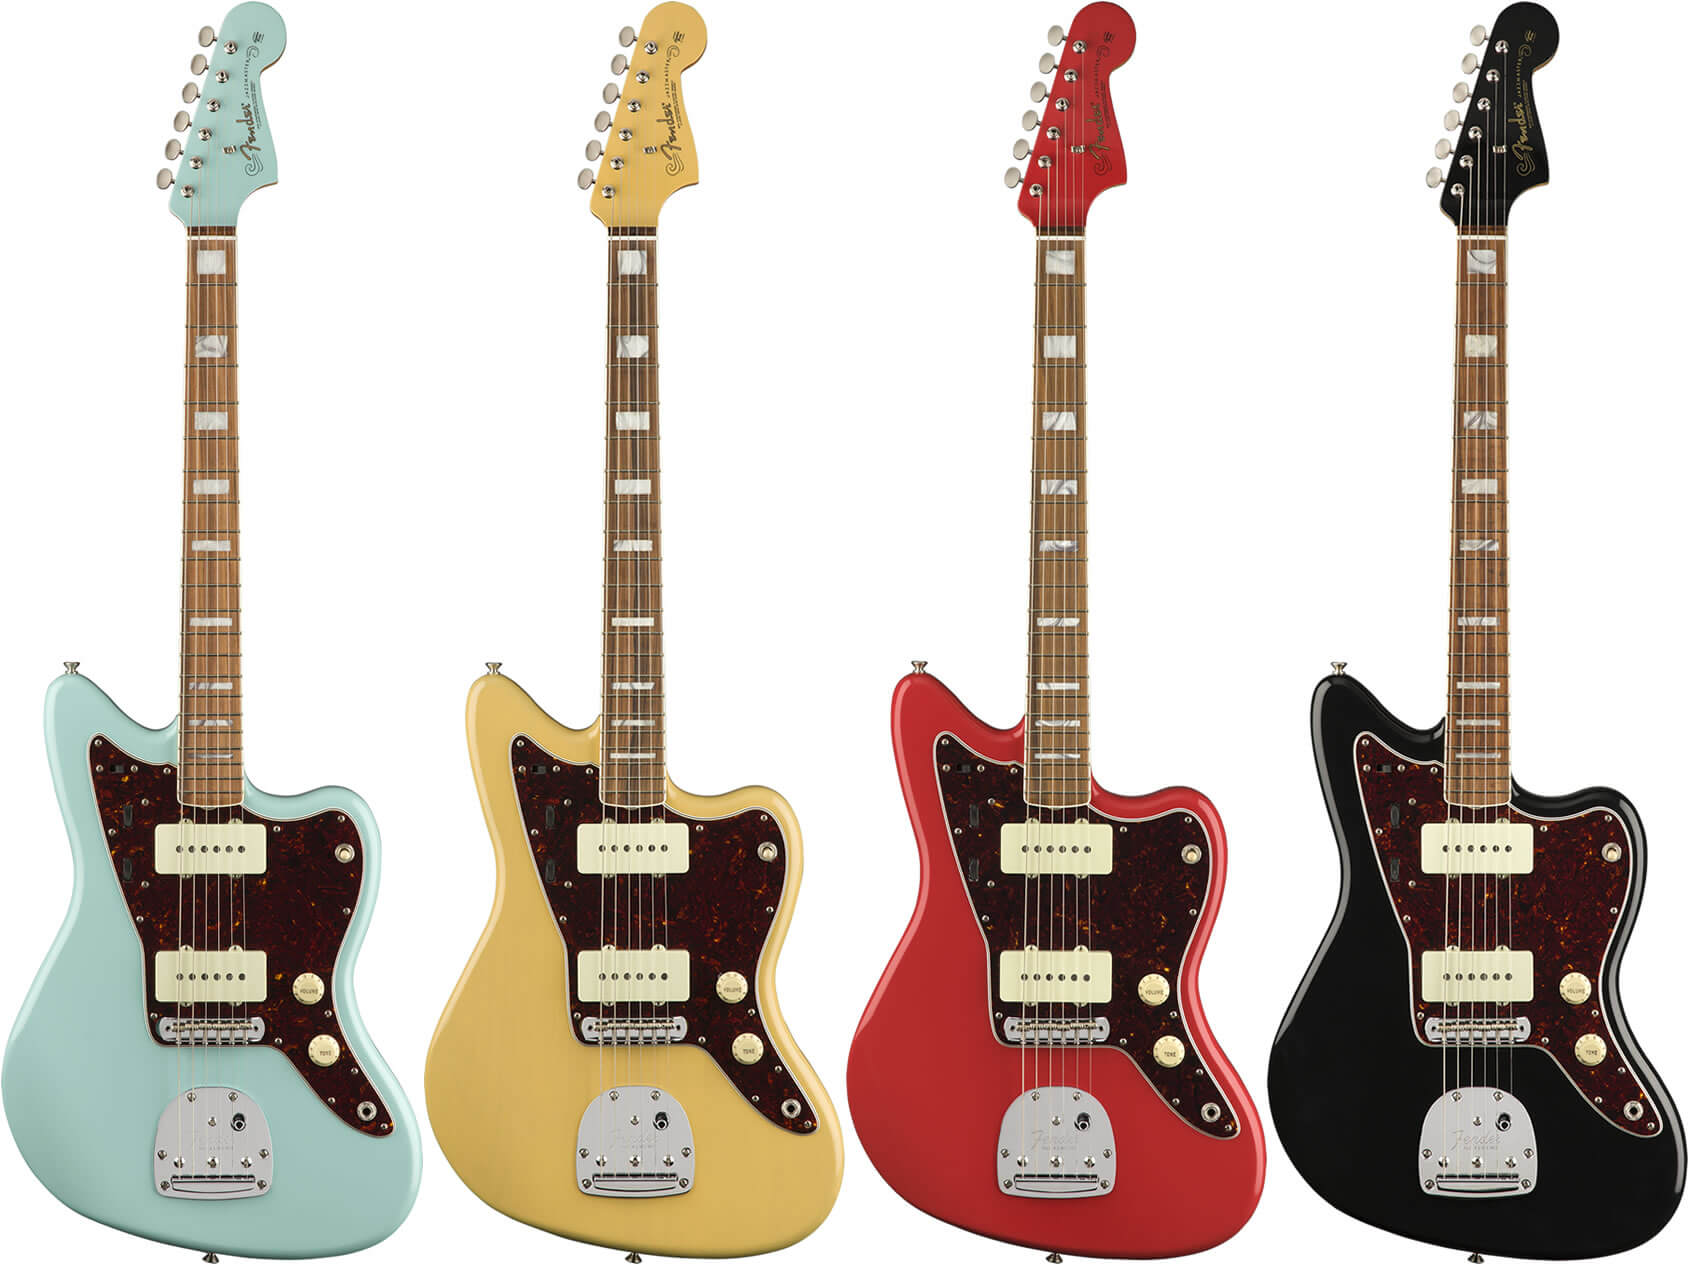 LIMITED EDITION 60th ANNIVERSARY CLASSIC JAZZMASTER